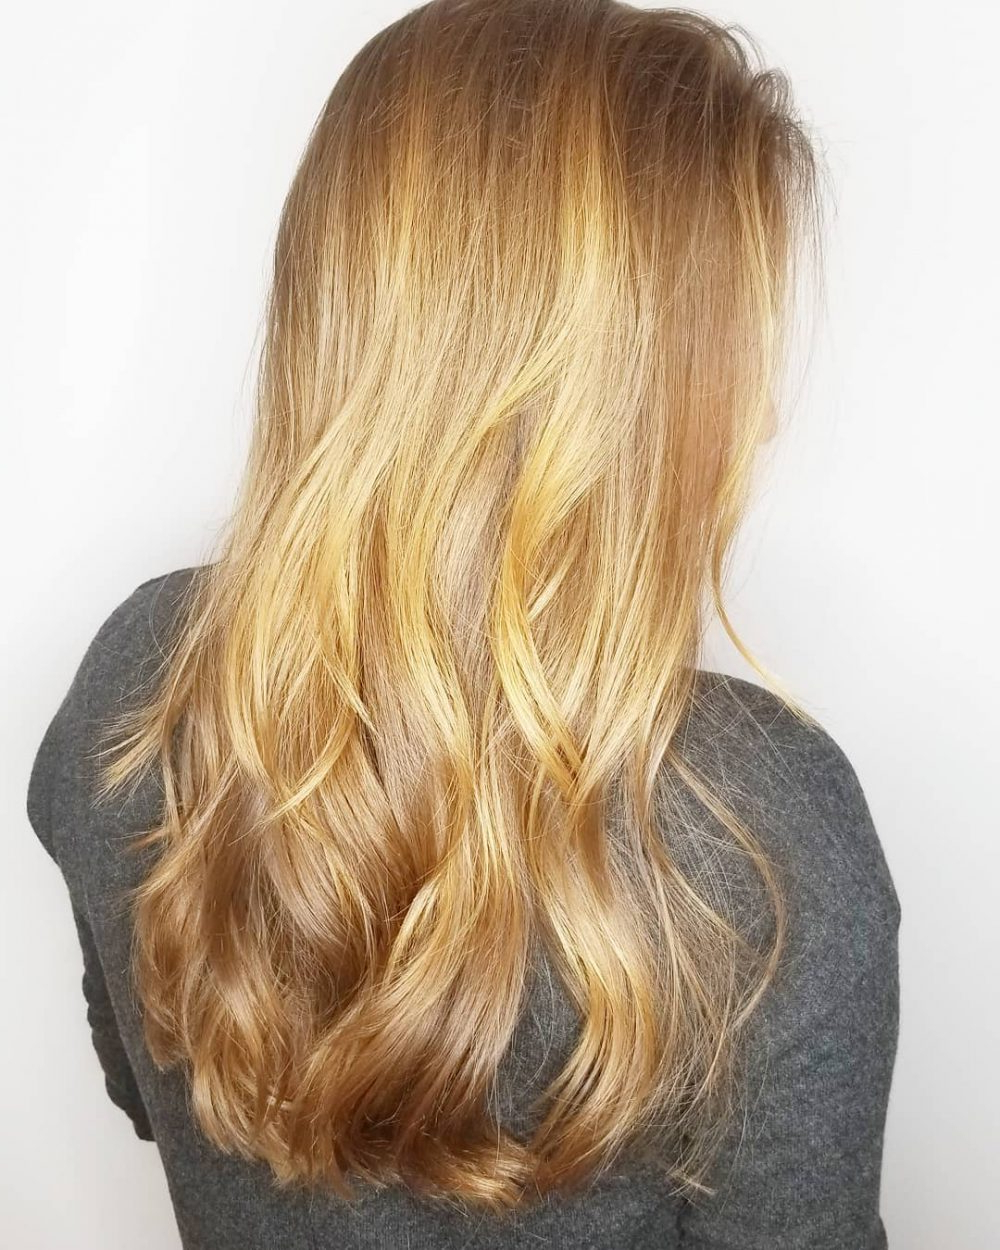 Preferred Very Long Layers Hairstyles Within 36 Perfect Hairstyles For Long Thin Hair (Trending For 2019!) (View 17 of 20)